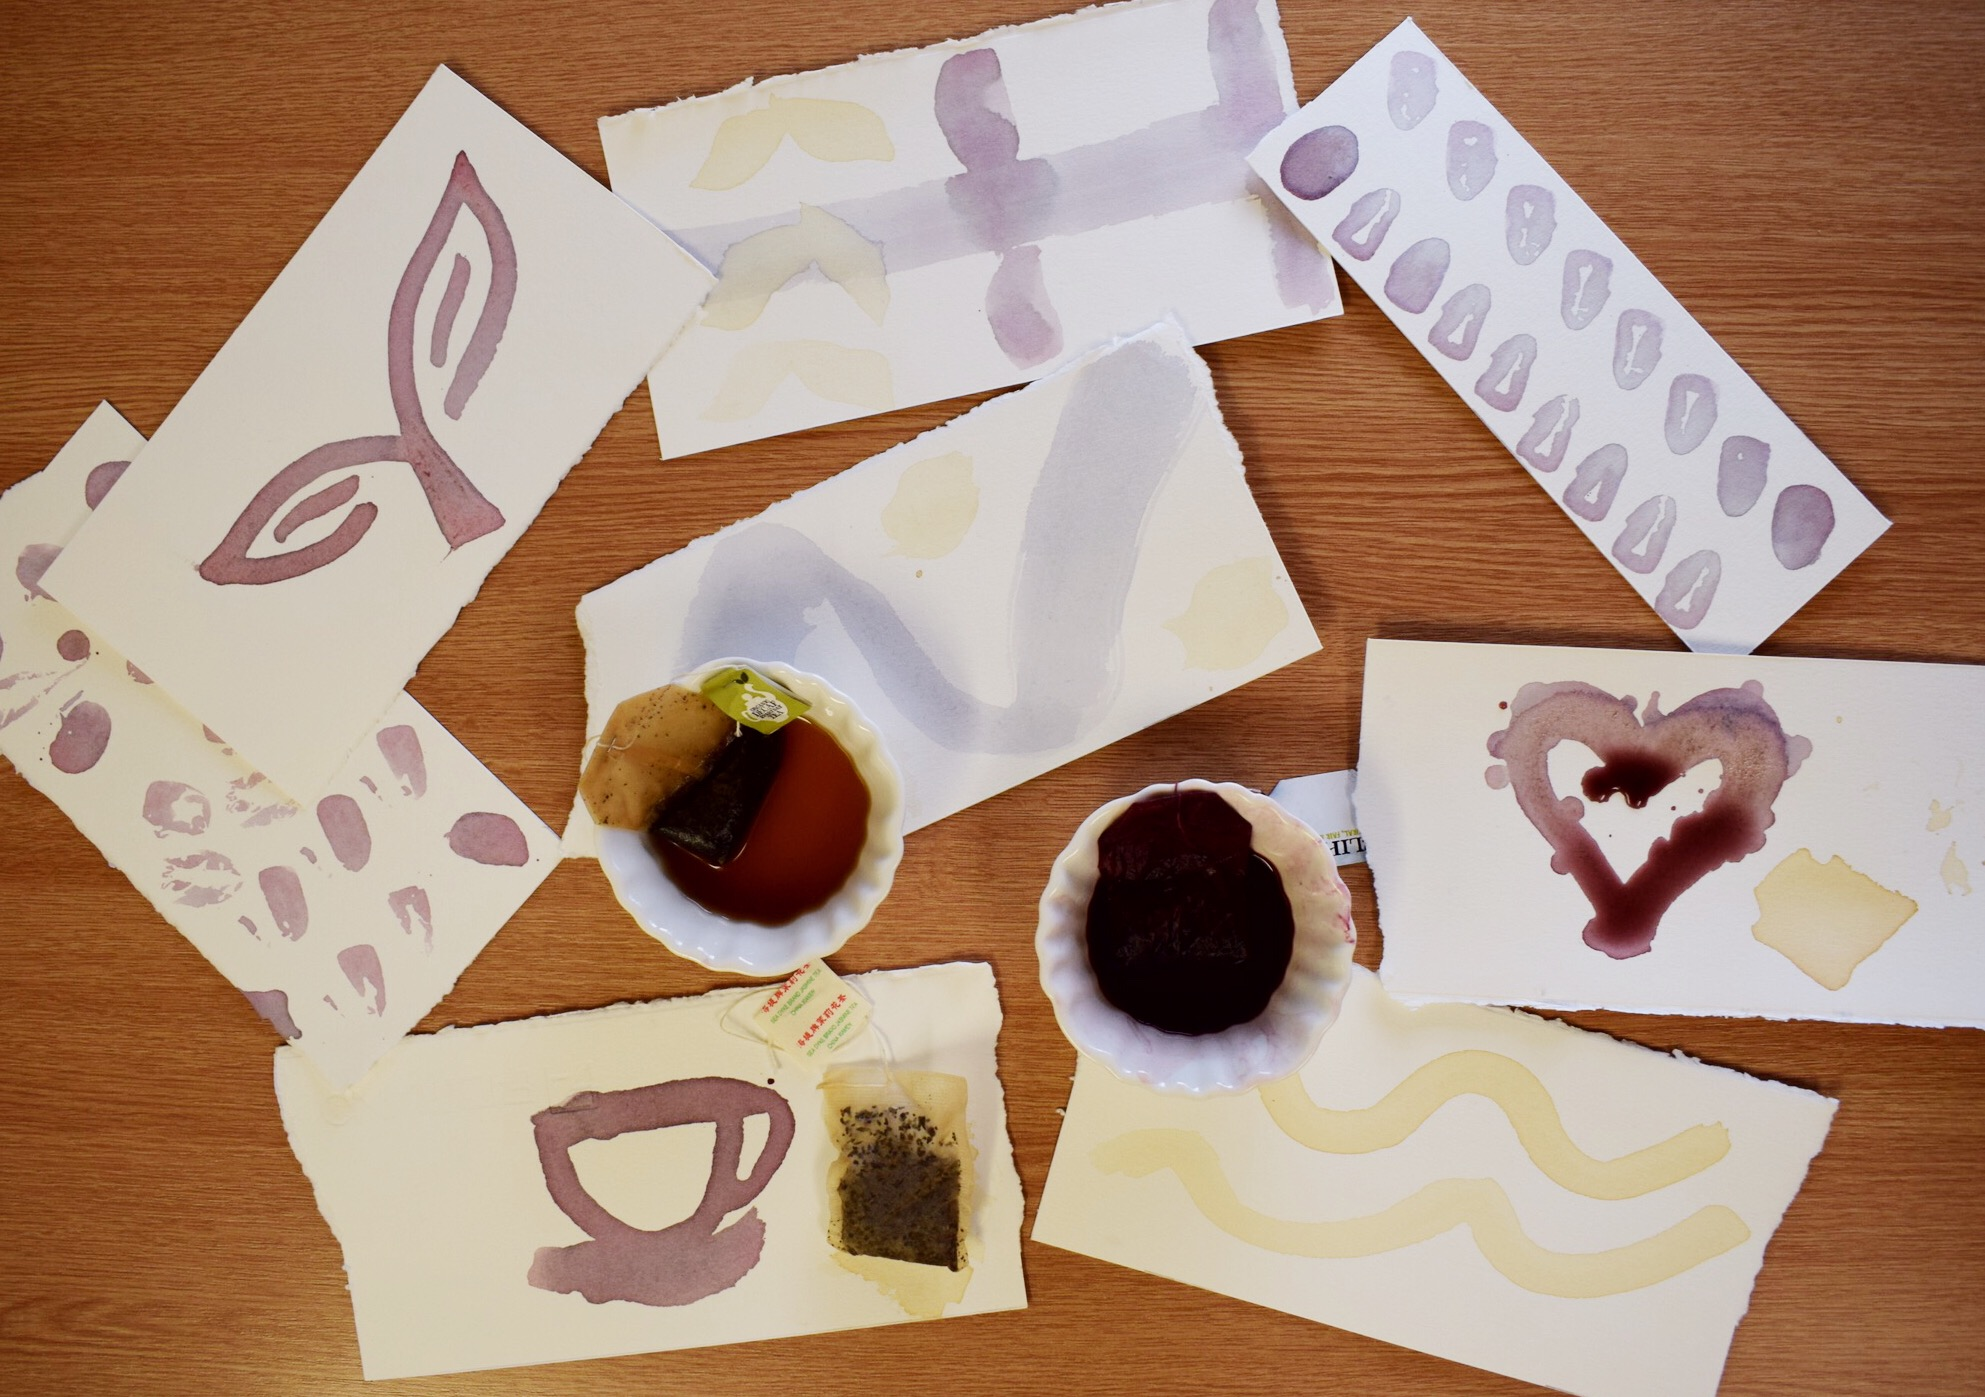 Painting with Tea Bags